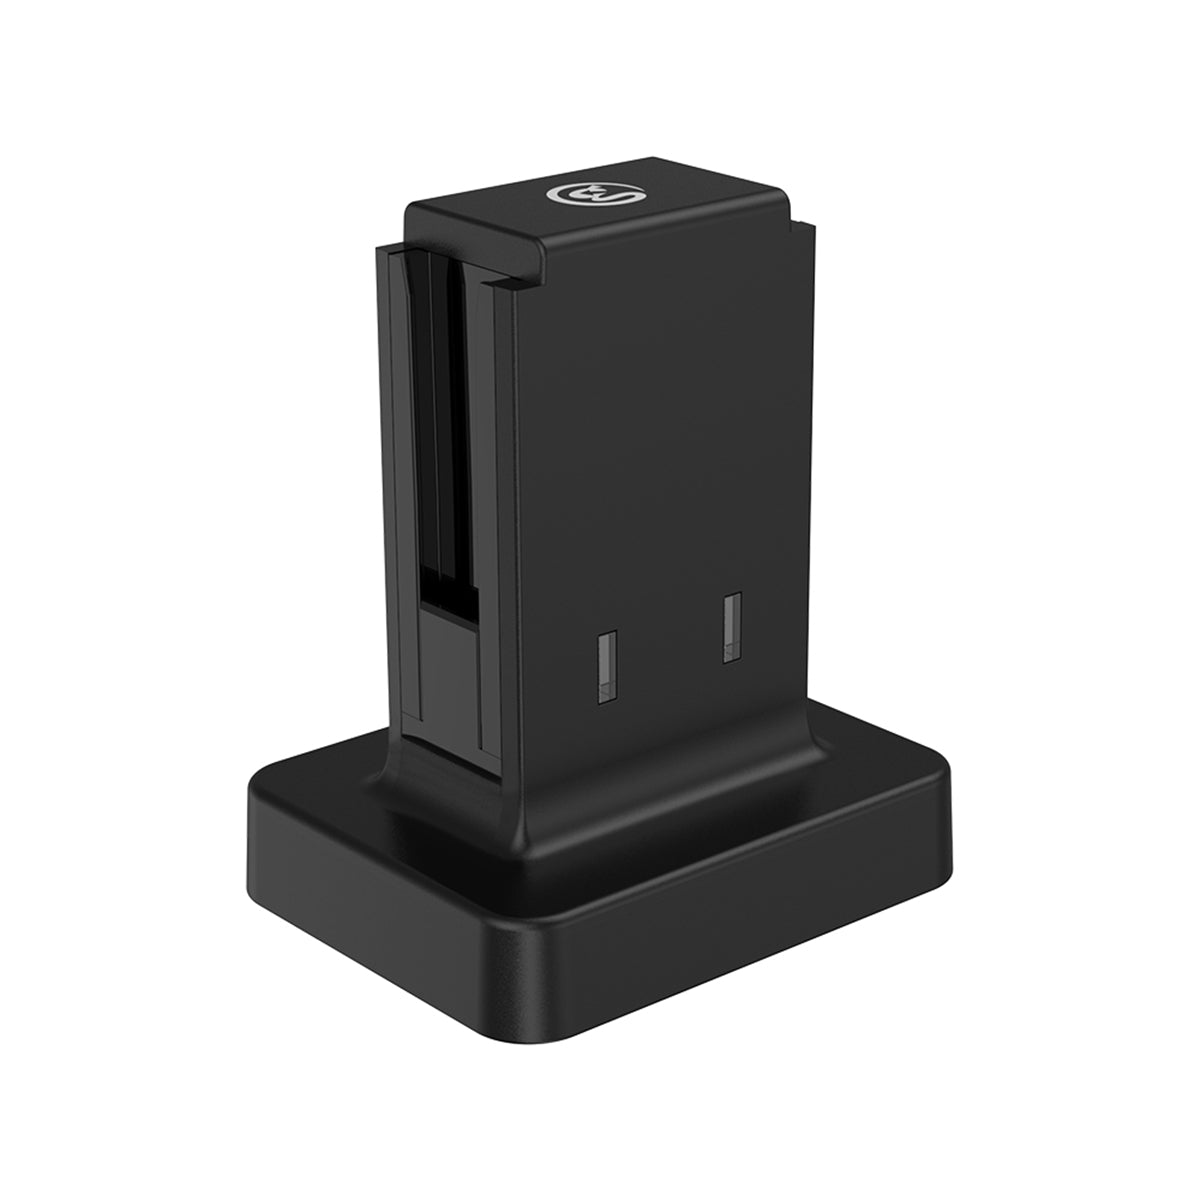 GameSir Dual Controller Charging Station Dock for Nintendo Switch Joy-Con